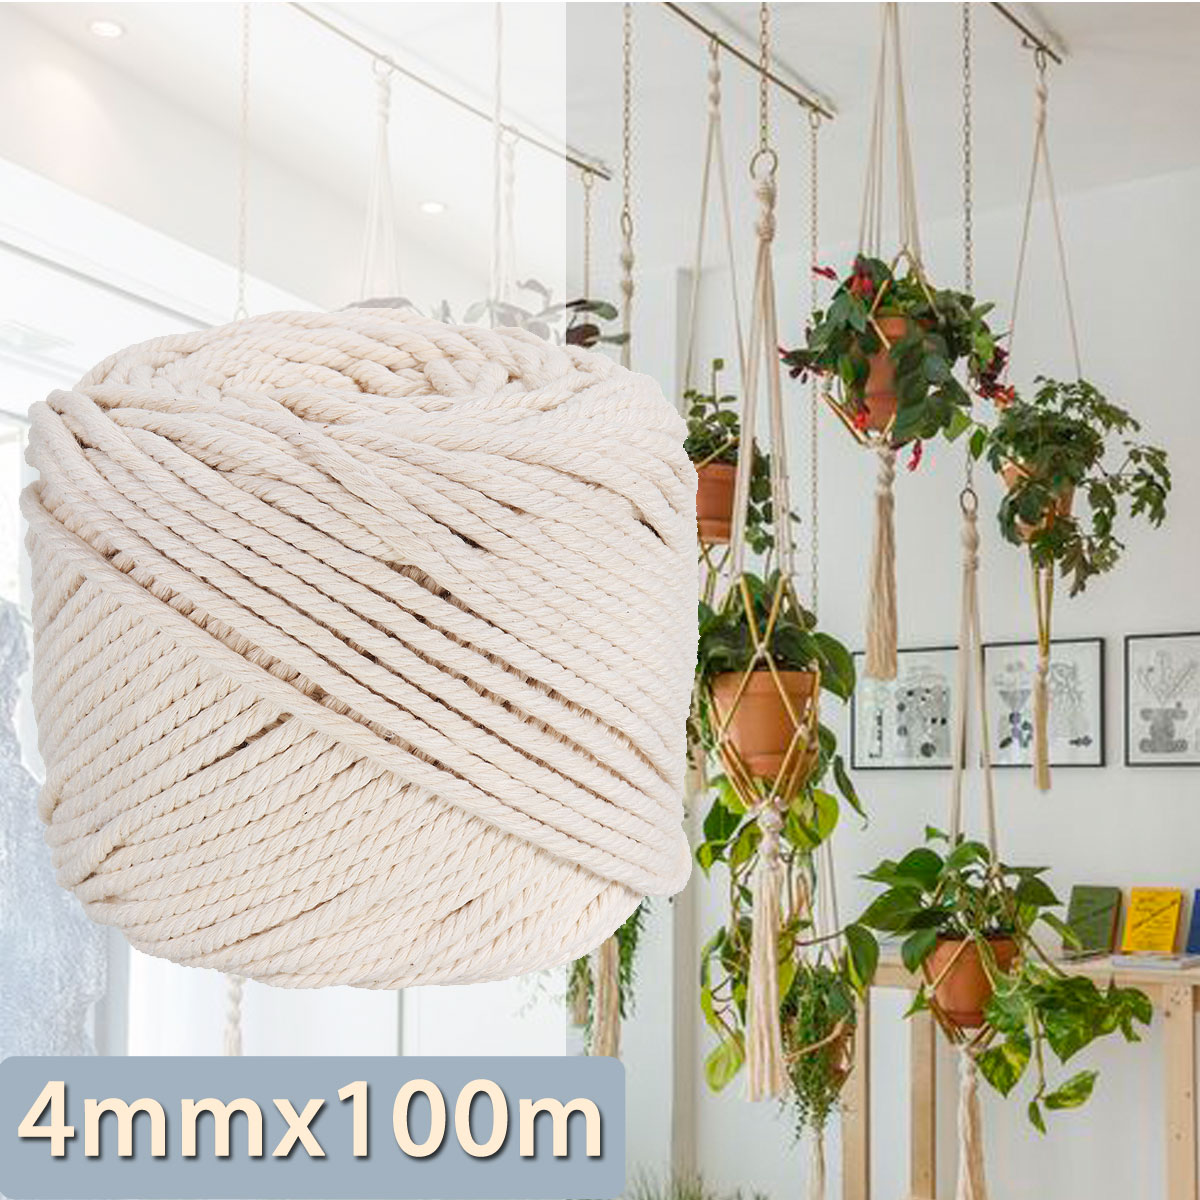 4mmx100m Natural Beige Cotton Twisted Cord Rope DIY Craft Macrame Woven String Braided Wire